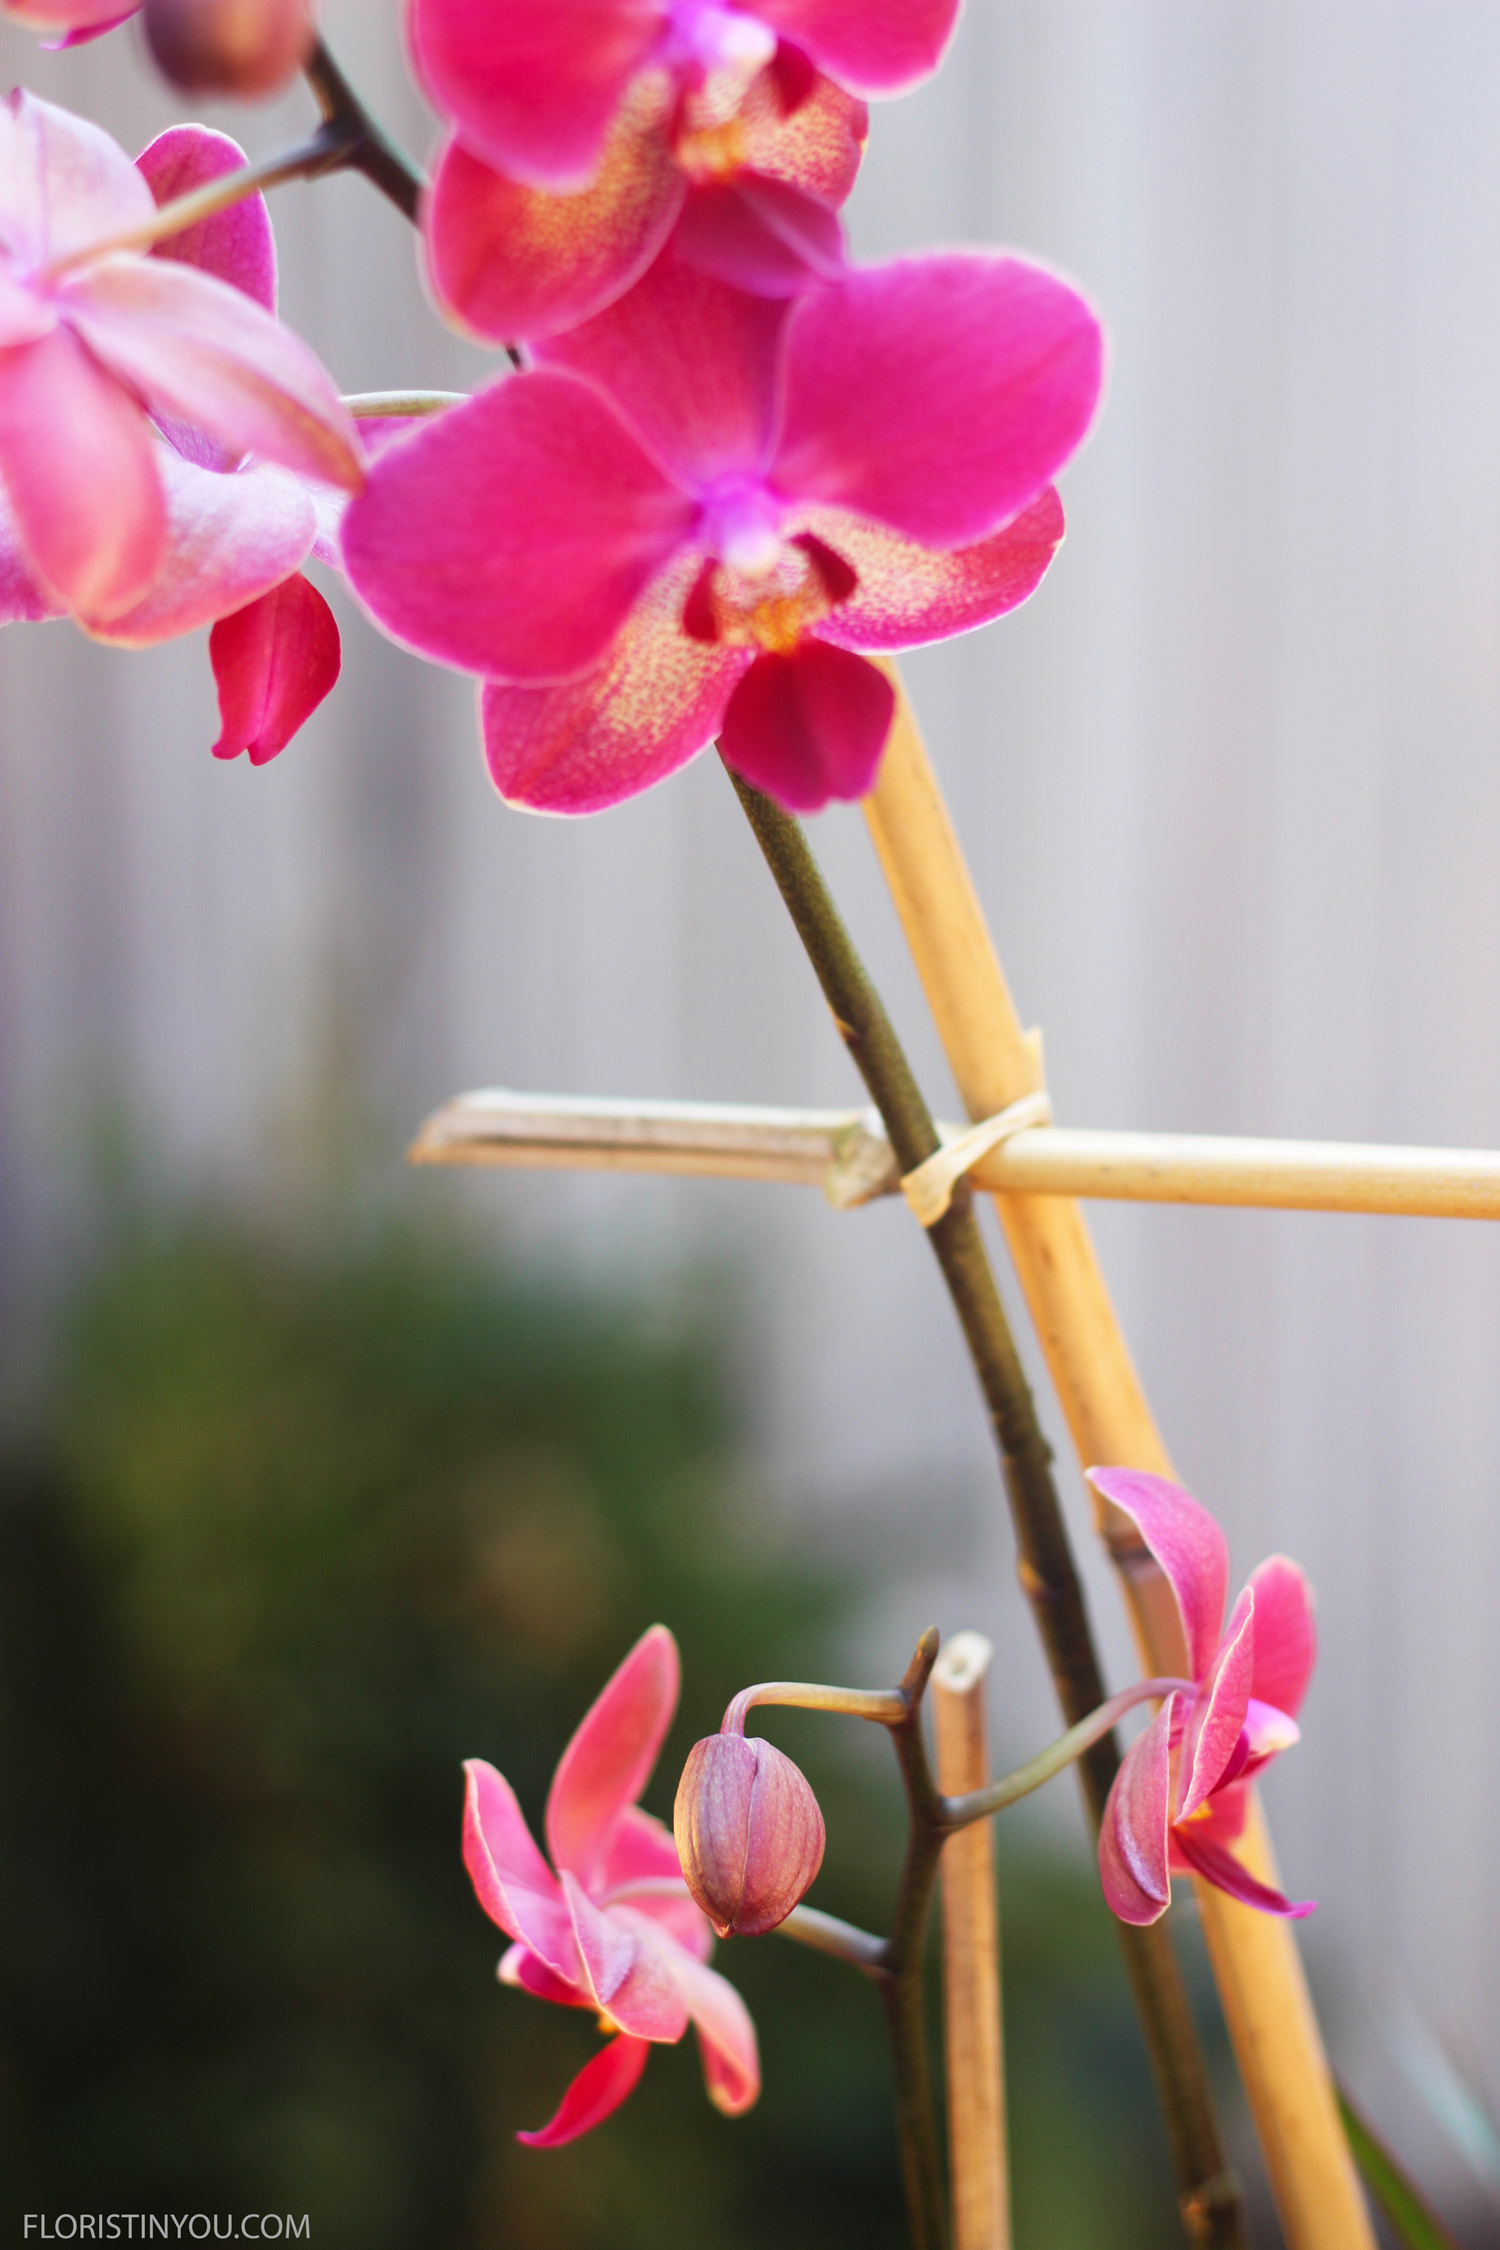 On left and middle tie other end of horizontal Bamboo to verticle Bamboo and Orchid.